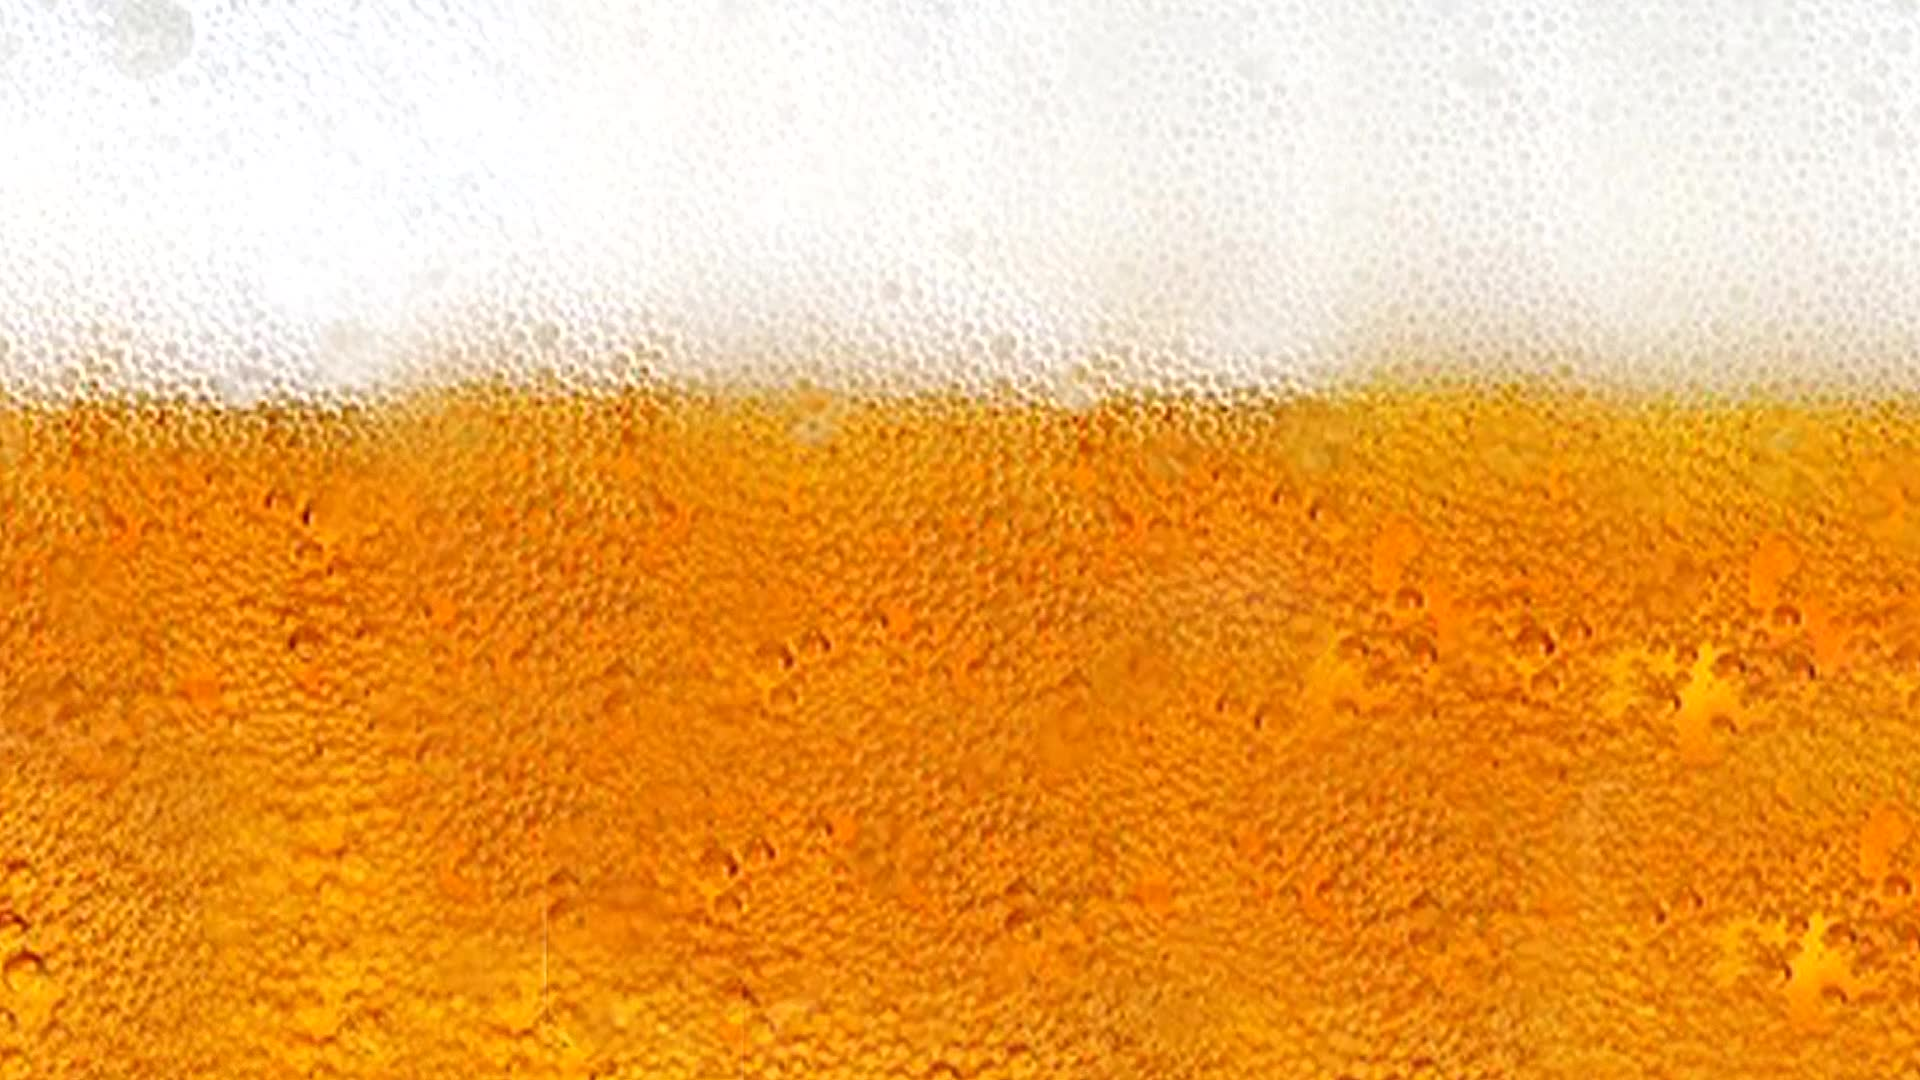 Design Your Own Home Download More Beer Ny State To Let Homebrewers Go Small Scale